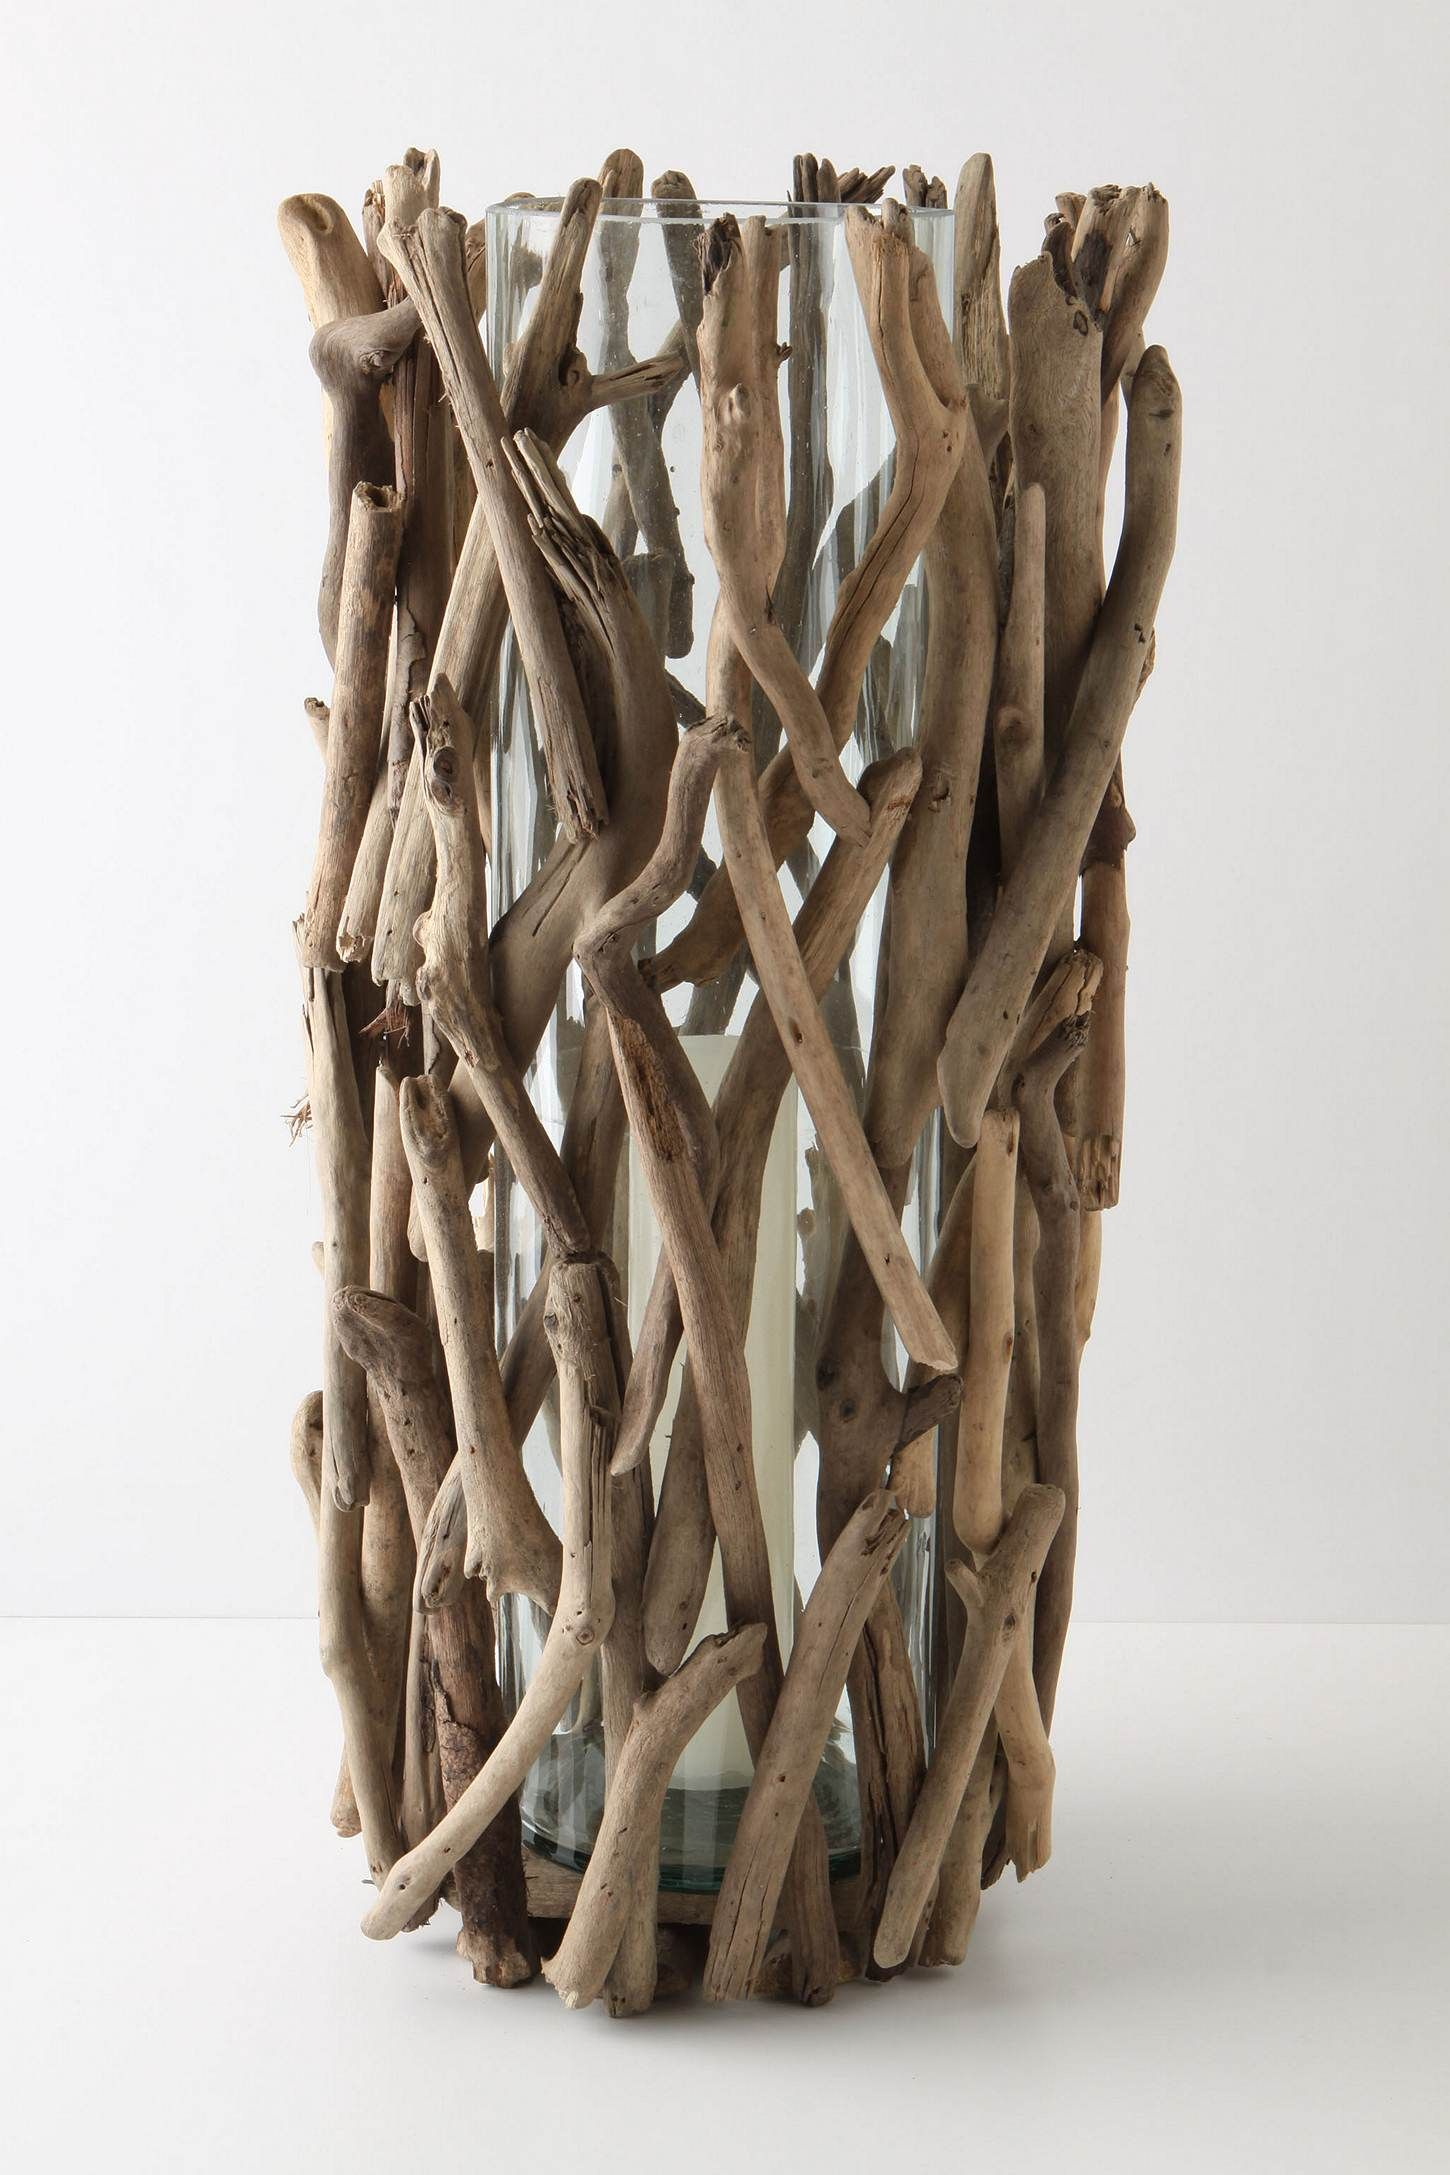 Driftwood Hurricane Could Easily Make Your Own Using A Clear